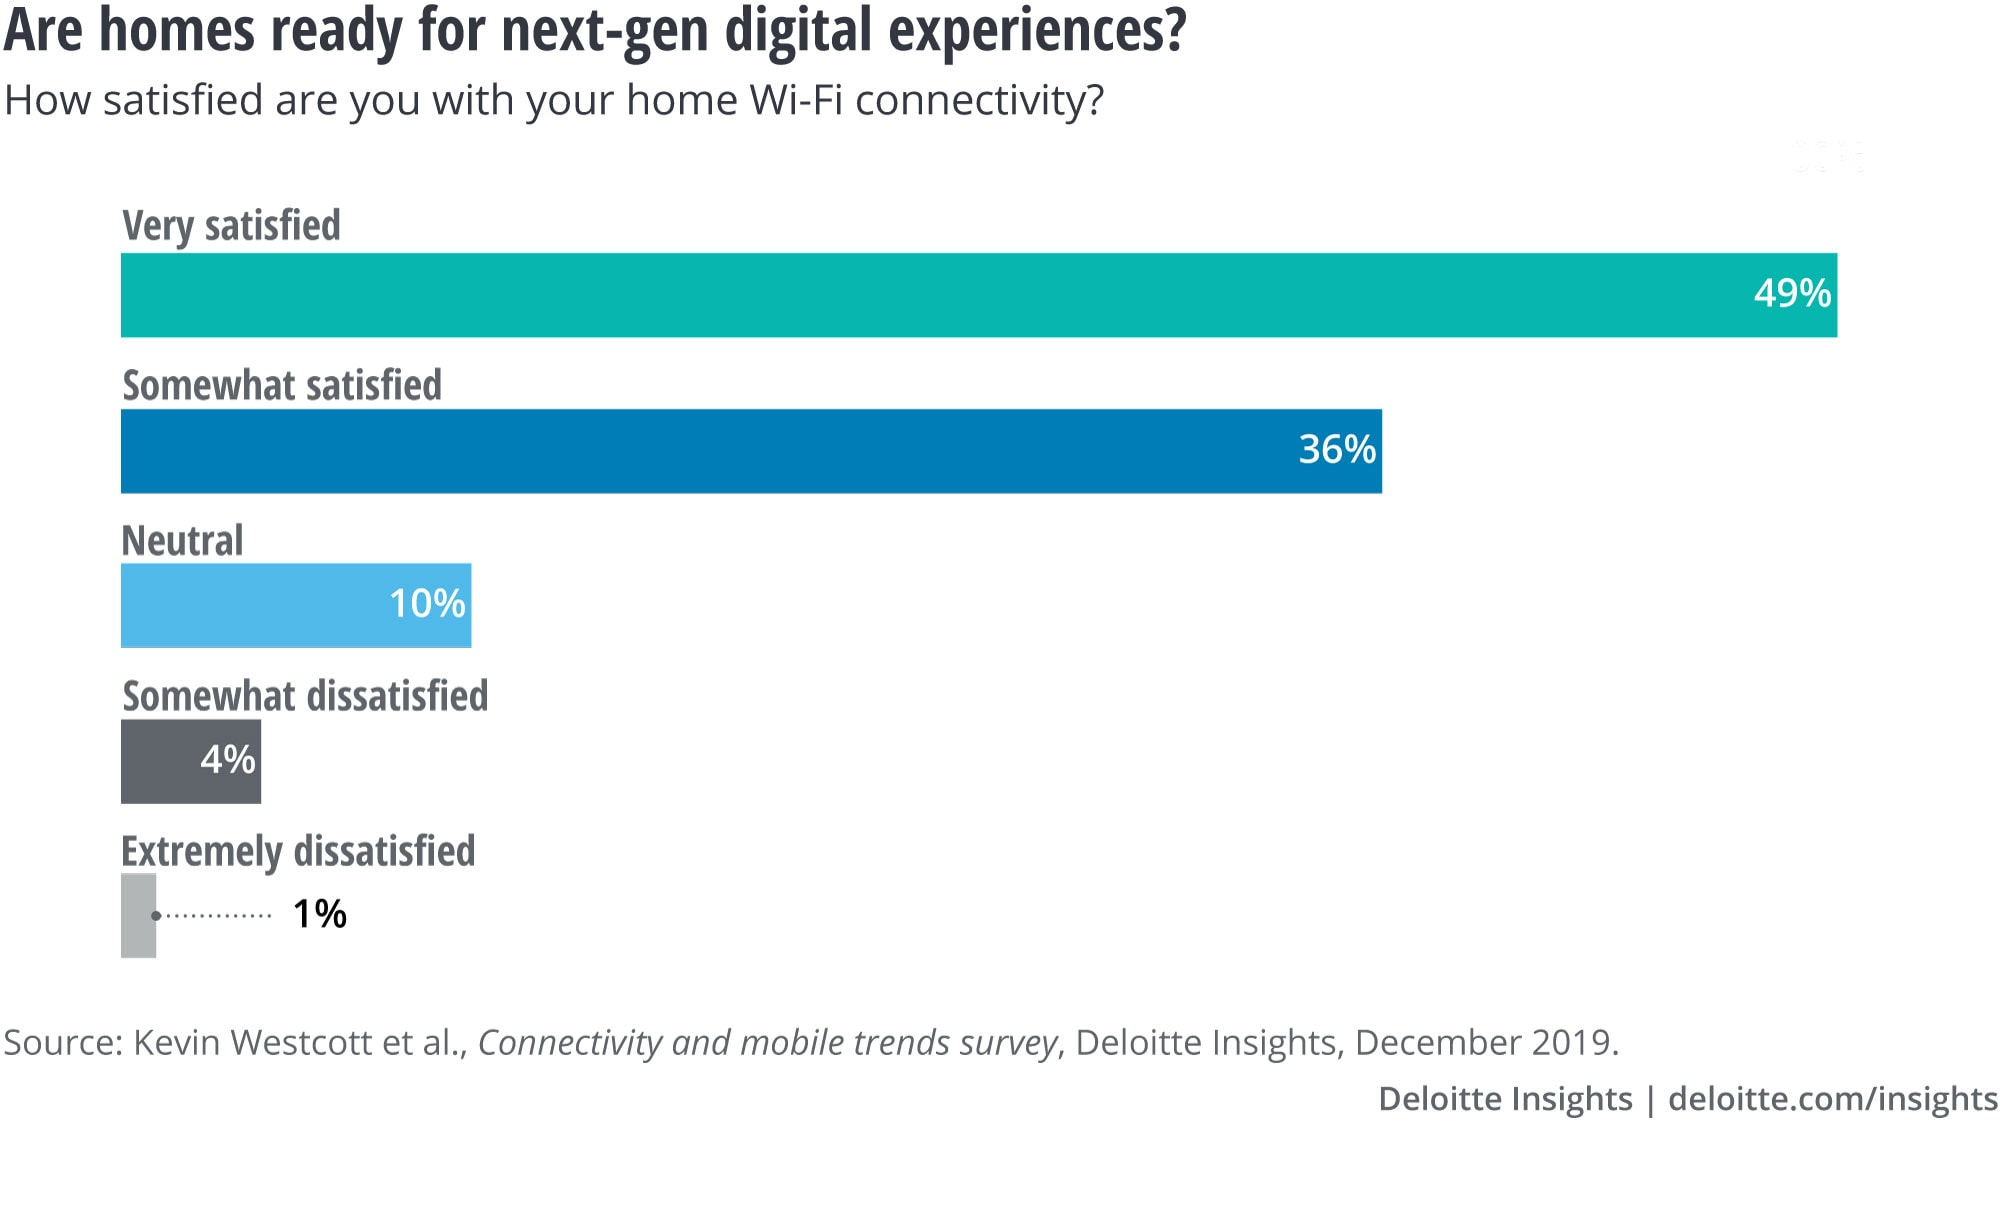 Are homes ready for next-gen digital experiences?